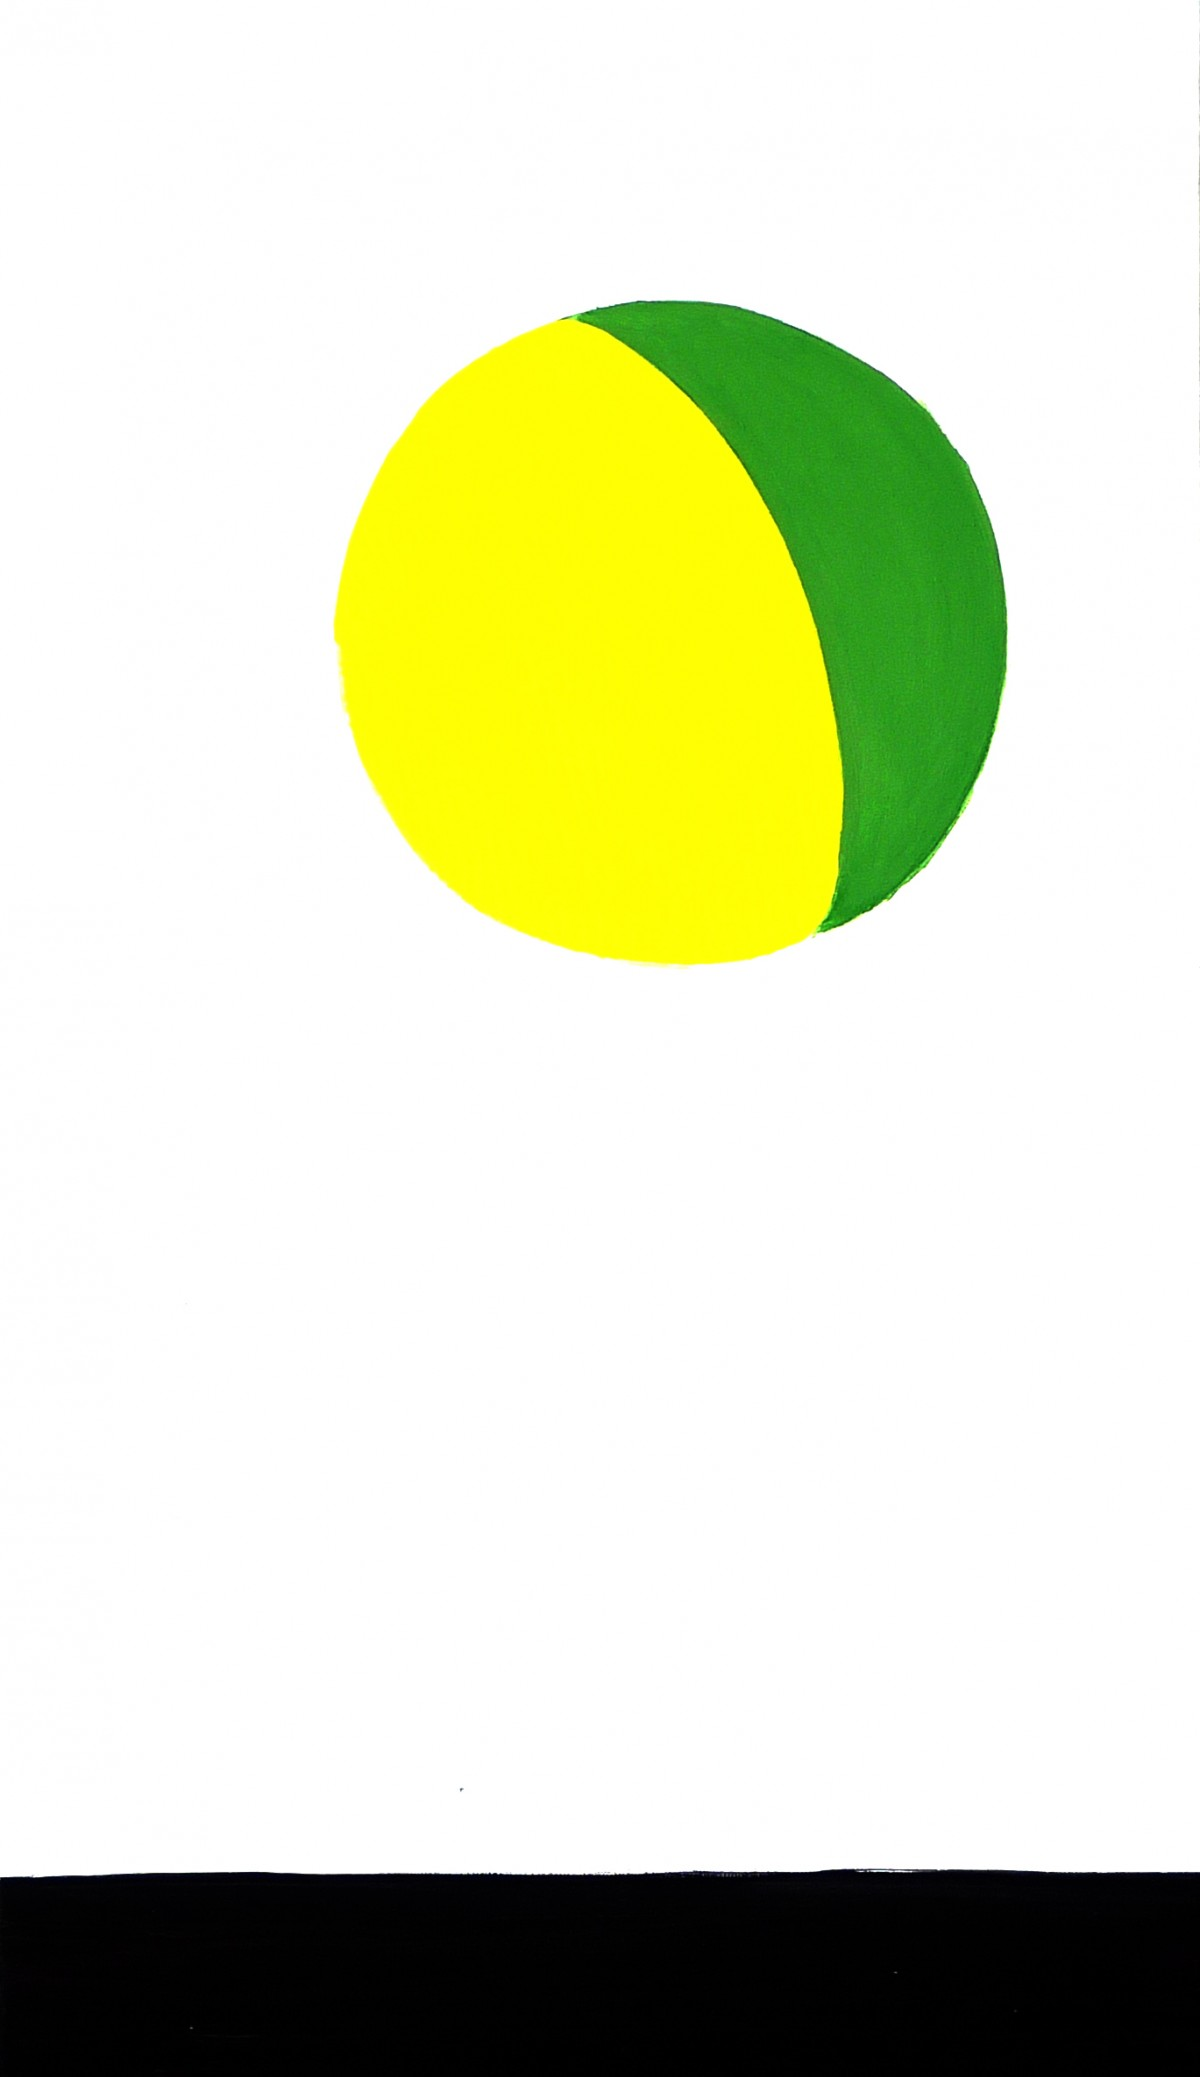 yellow-green-ball-with-ground